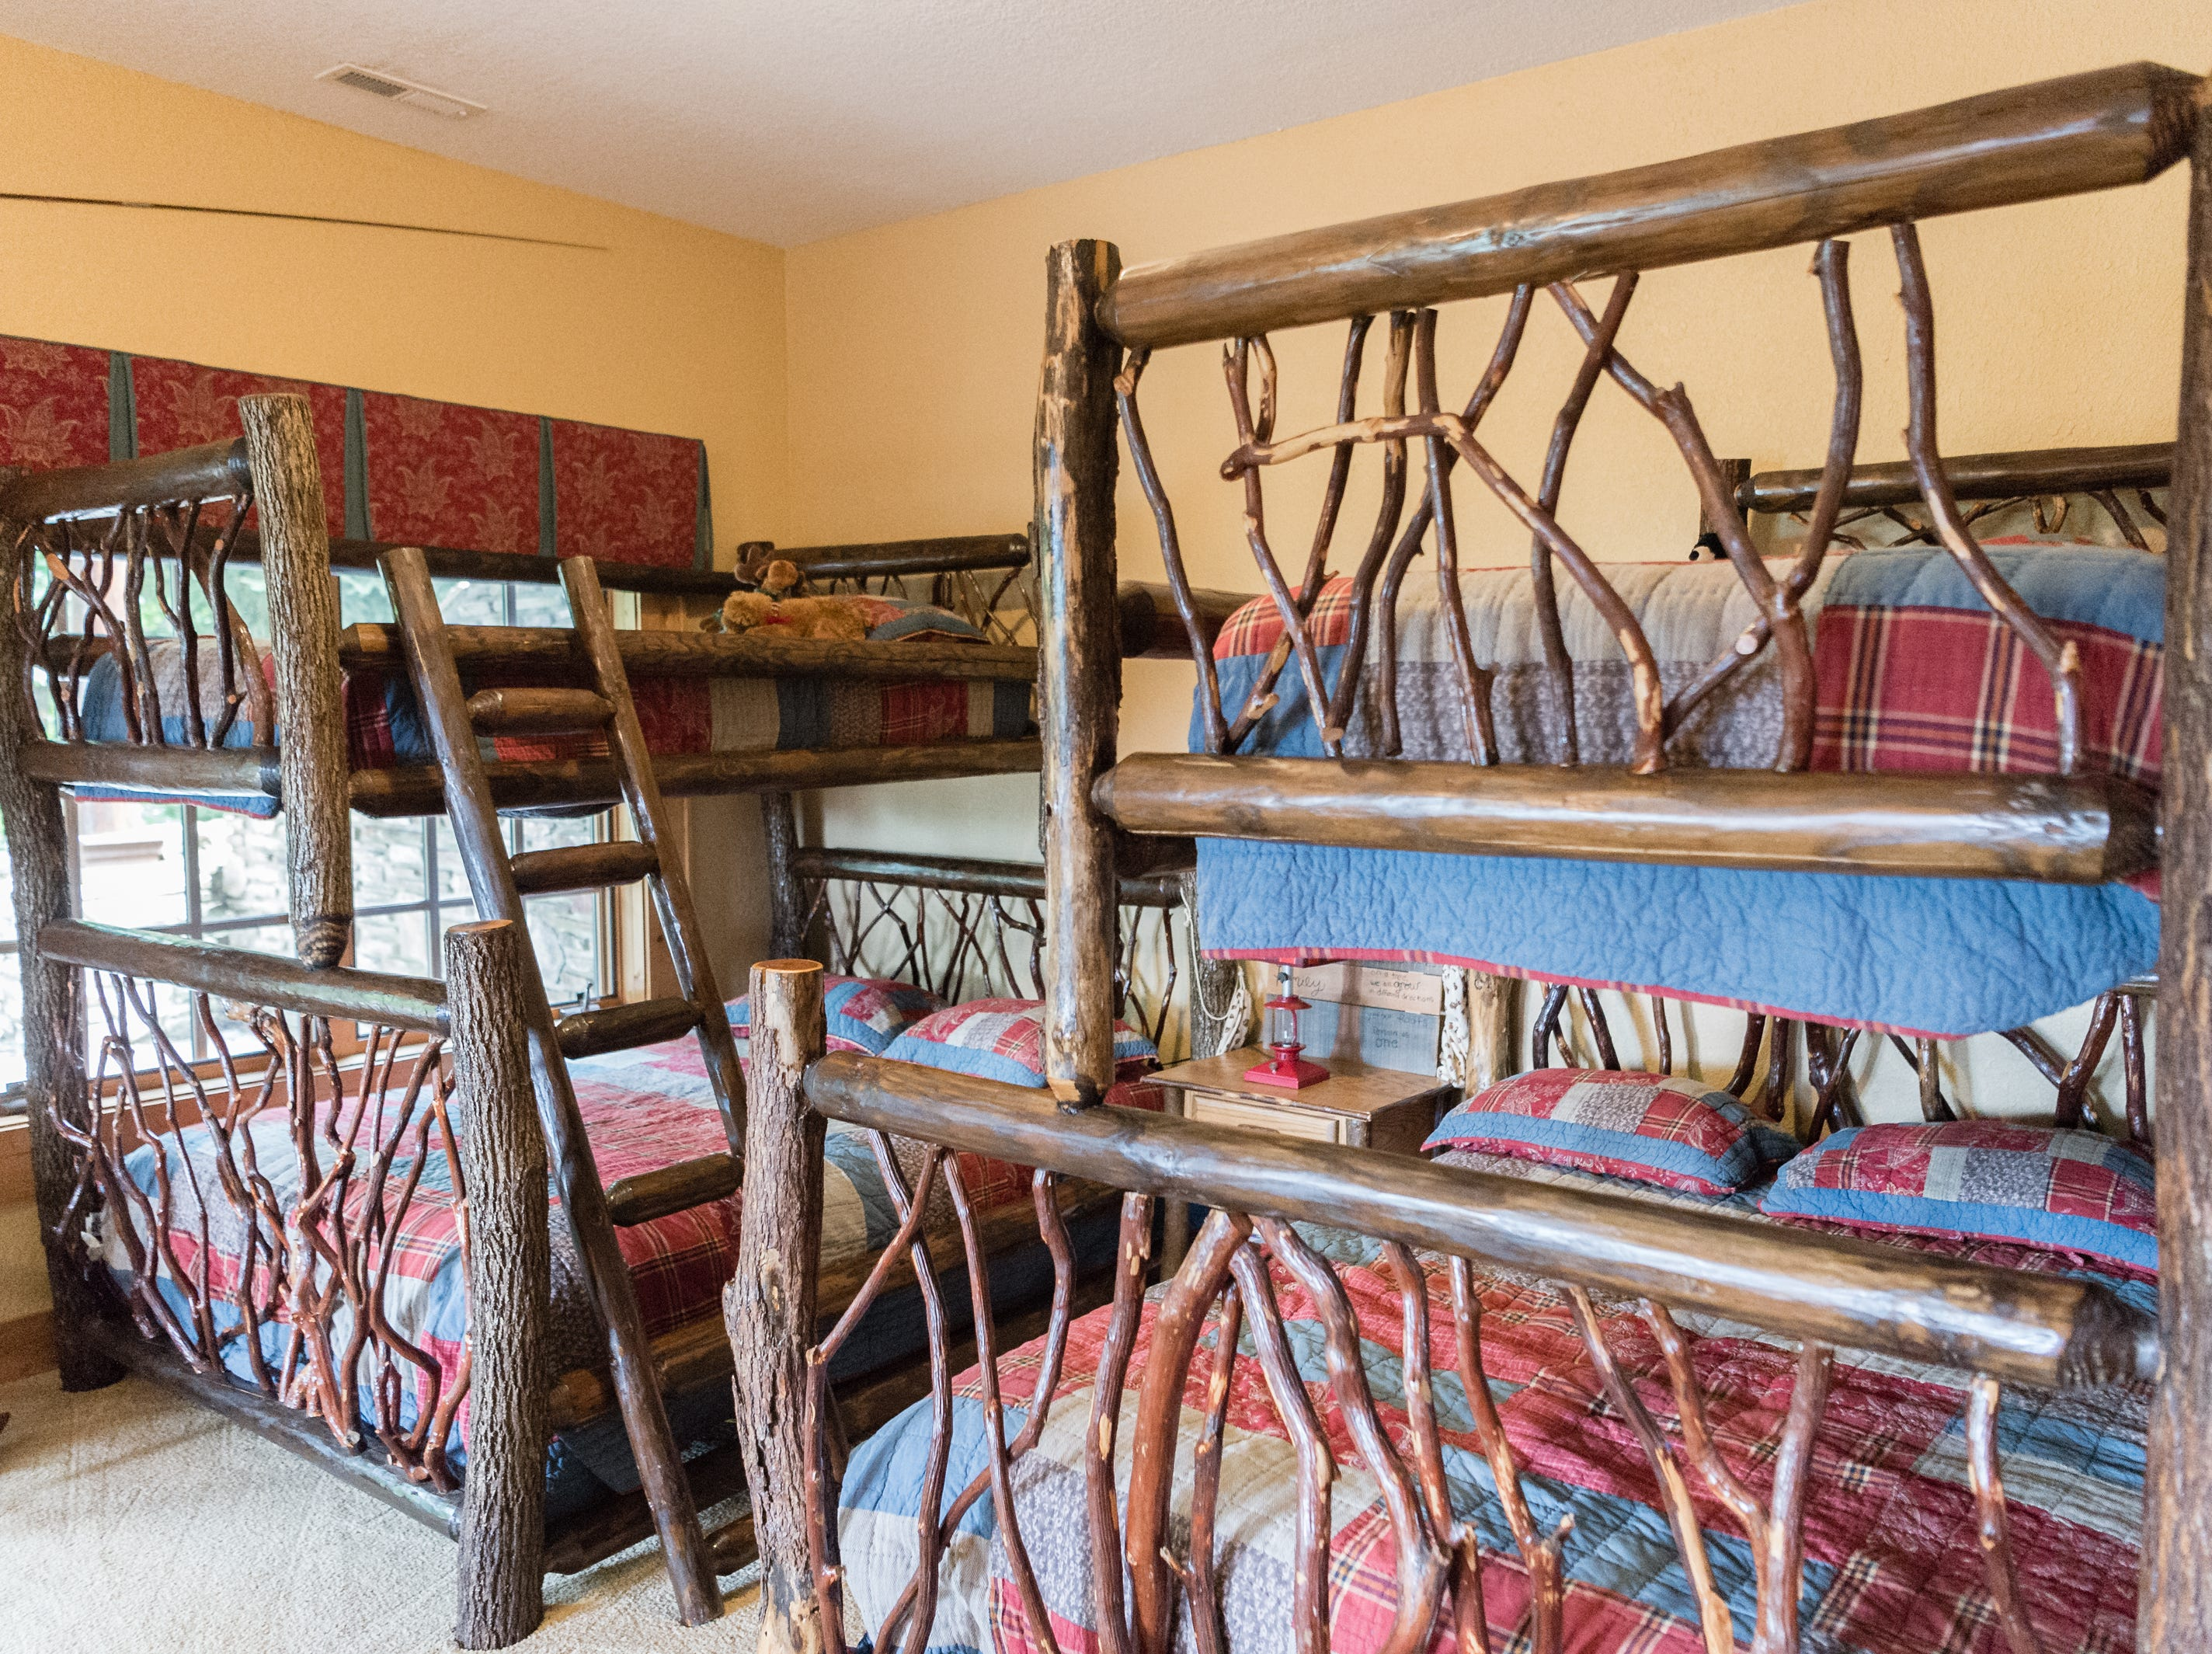 Bunk beds in a room on the basement level of Dan and Belle Fangmeyer's log cabin in Waynesville.